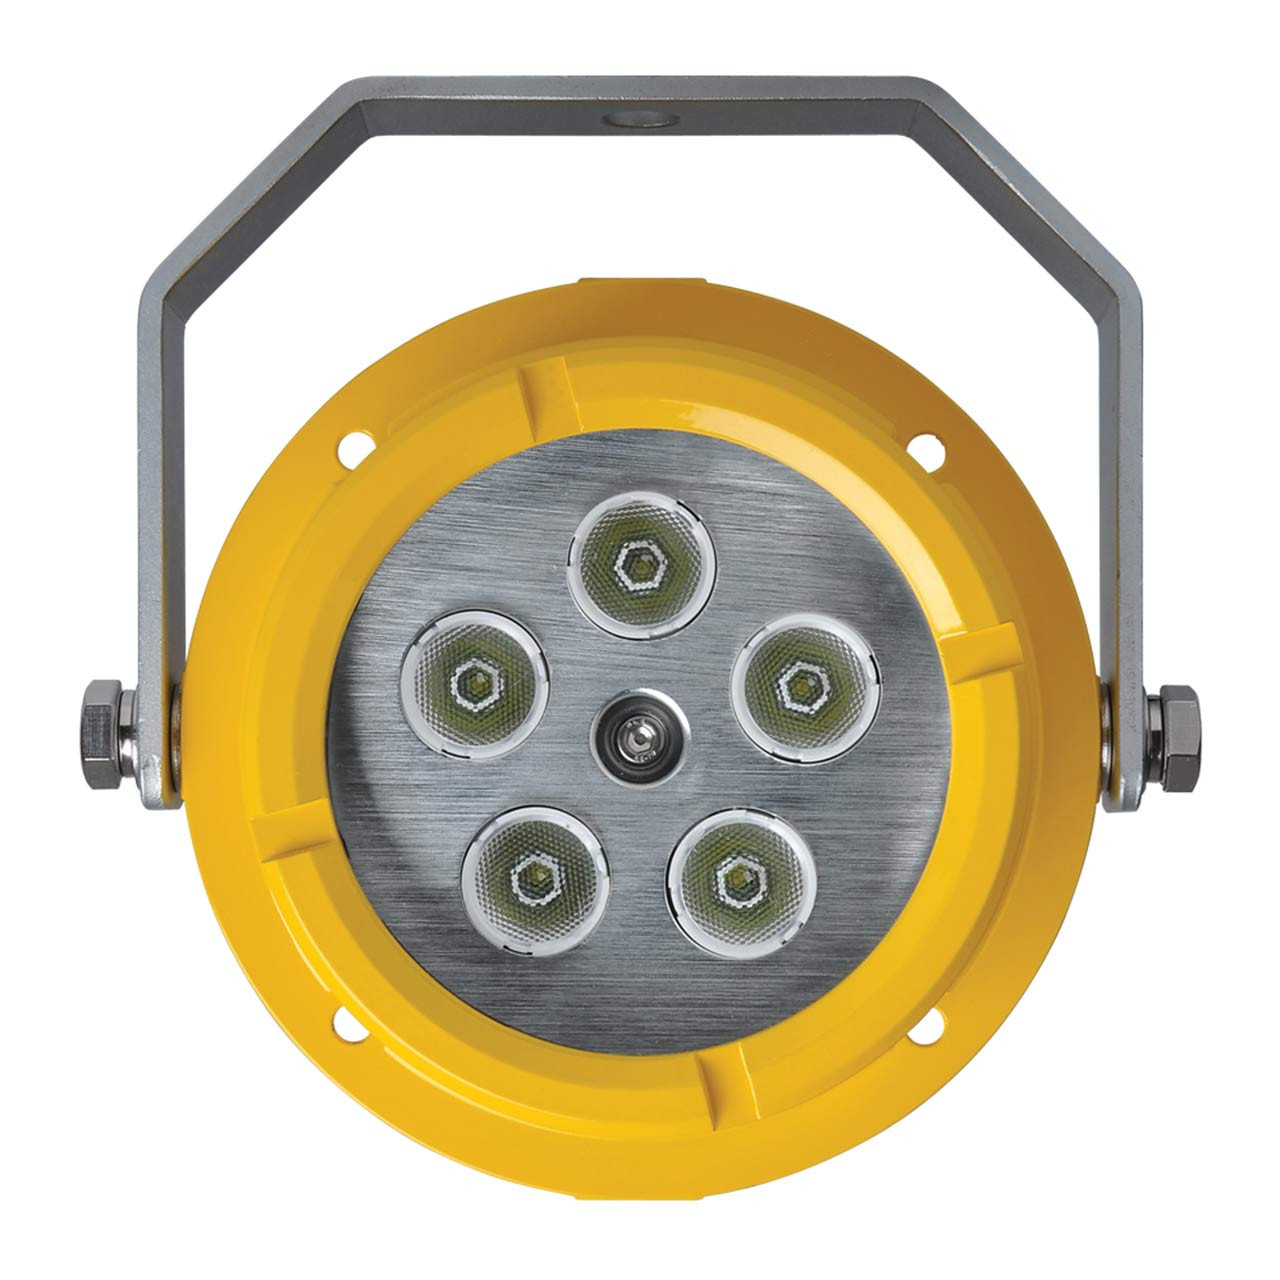 LED Docklite Head front view